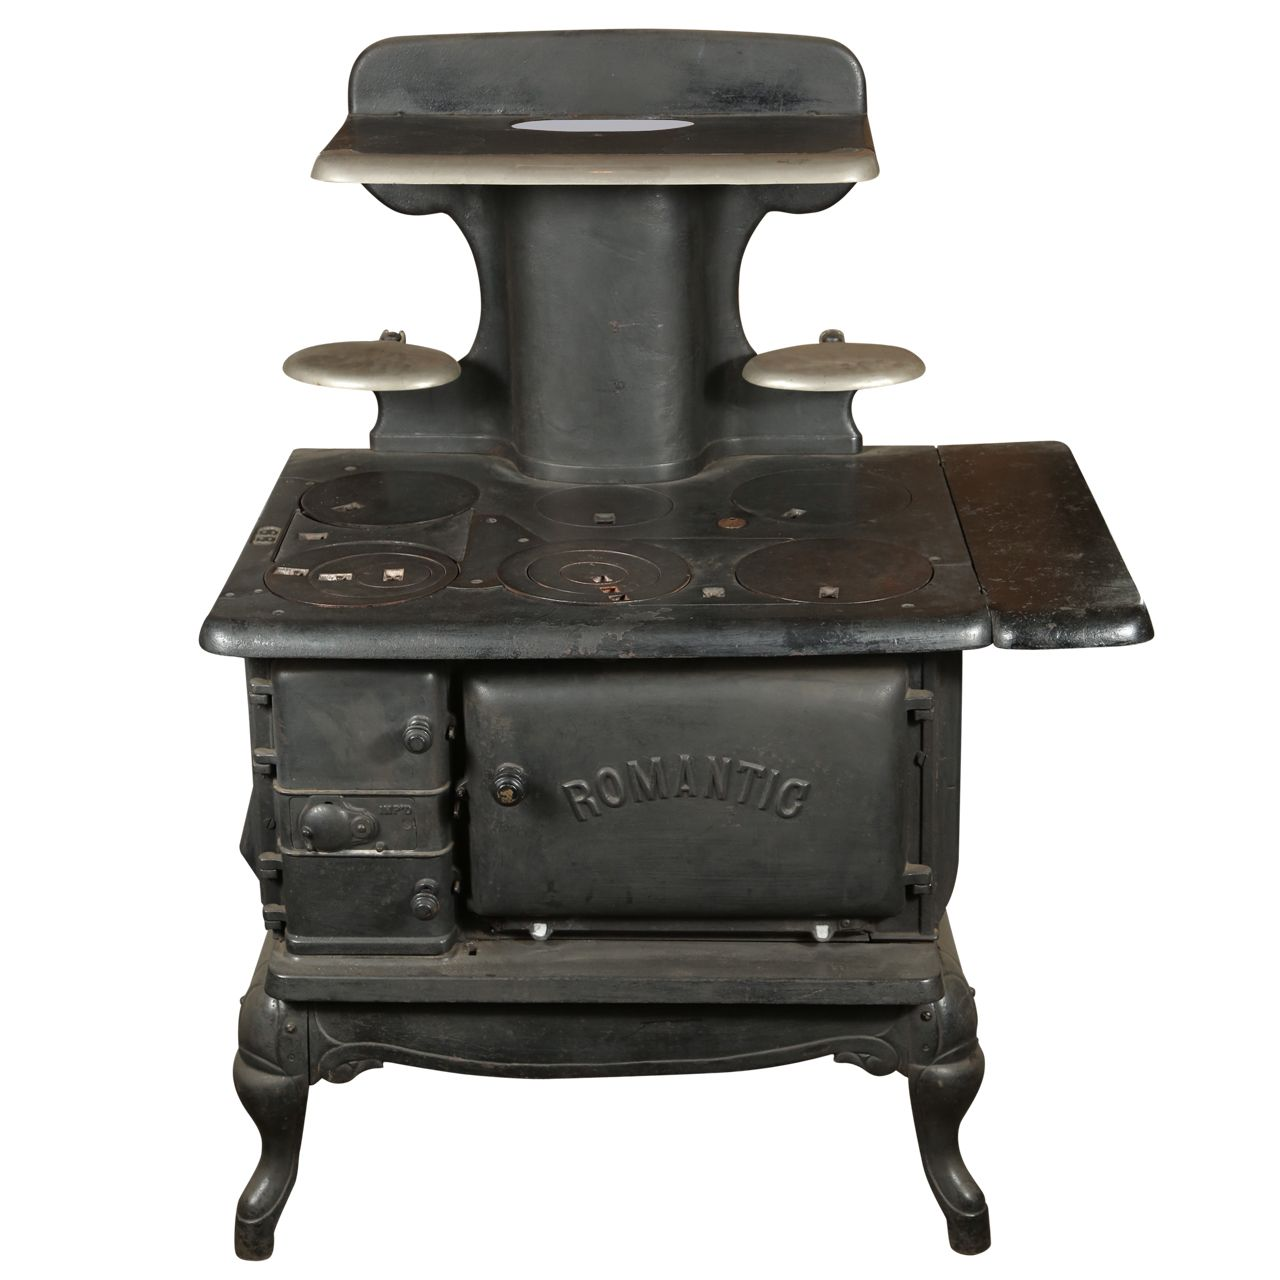 Antique Bedroom Furniture 1800 S - Late 1800s cast iron stove by romantic